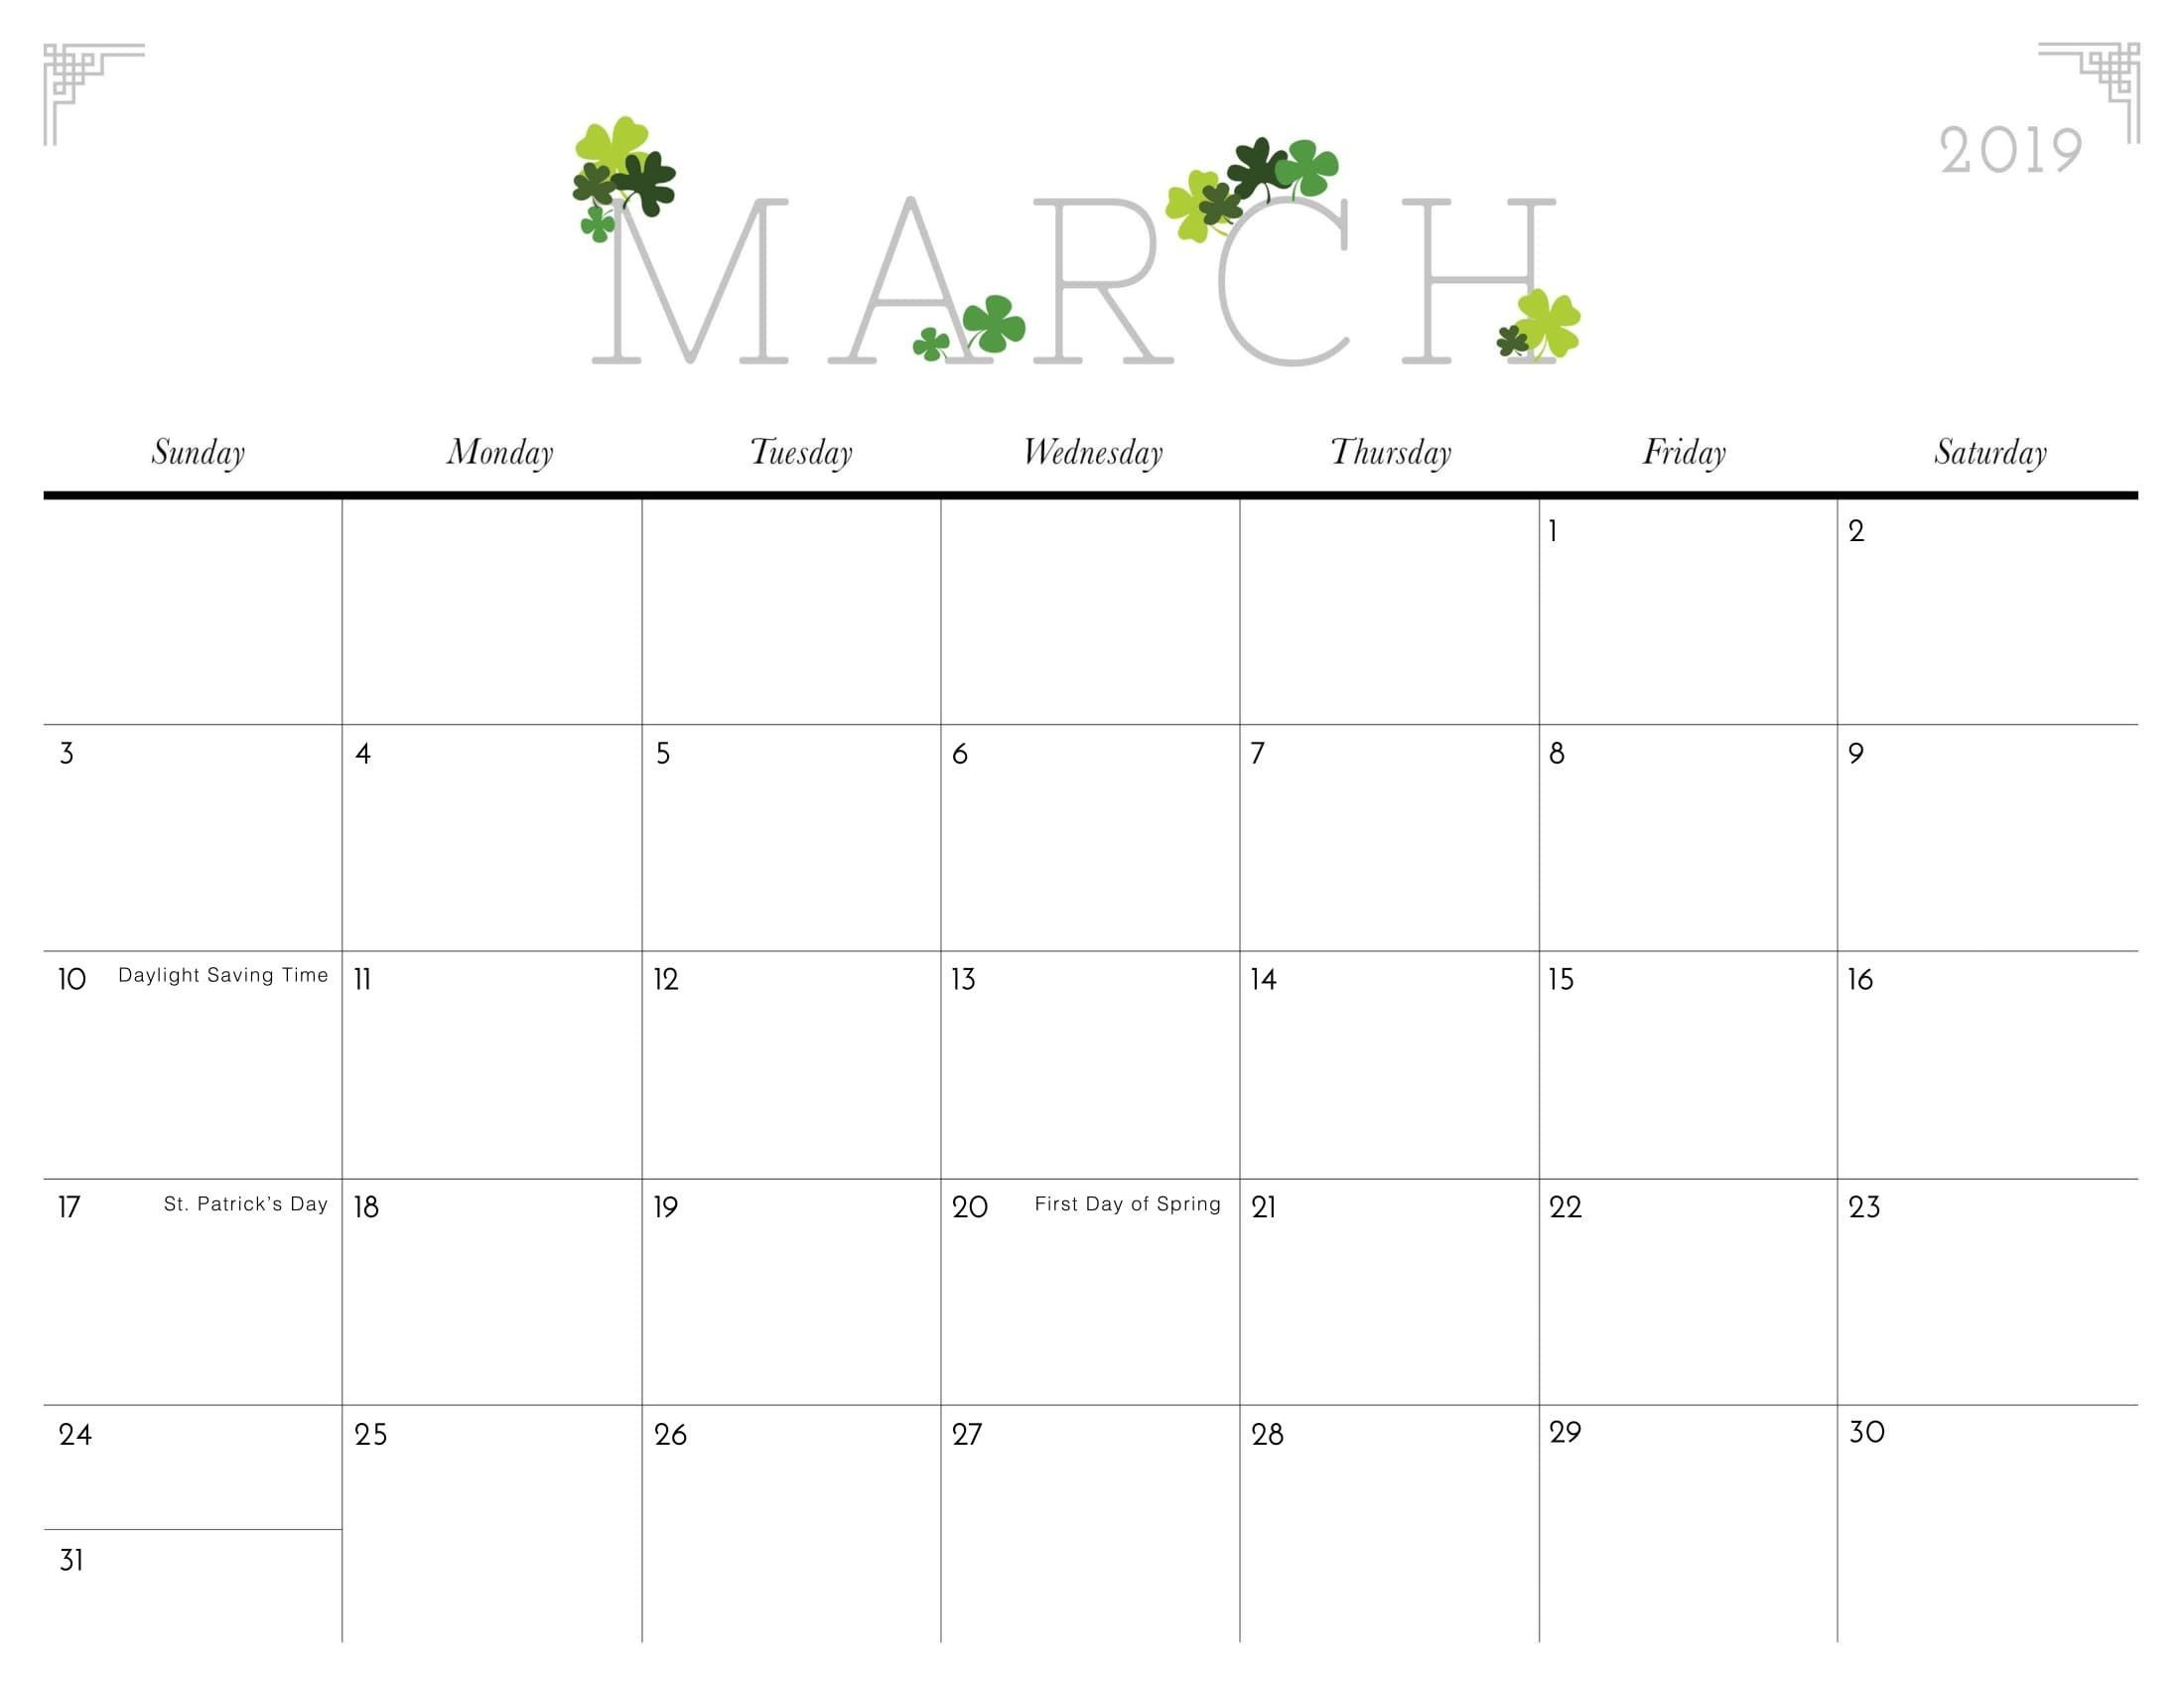 March Calendar Colors Mejores Y Más Novedosos Cute March 2019 Calendar Template Of March Calendar Colors Más Arriba-a-fecha Bluegrass Festival Color Palettes Pinterest